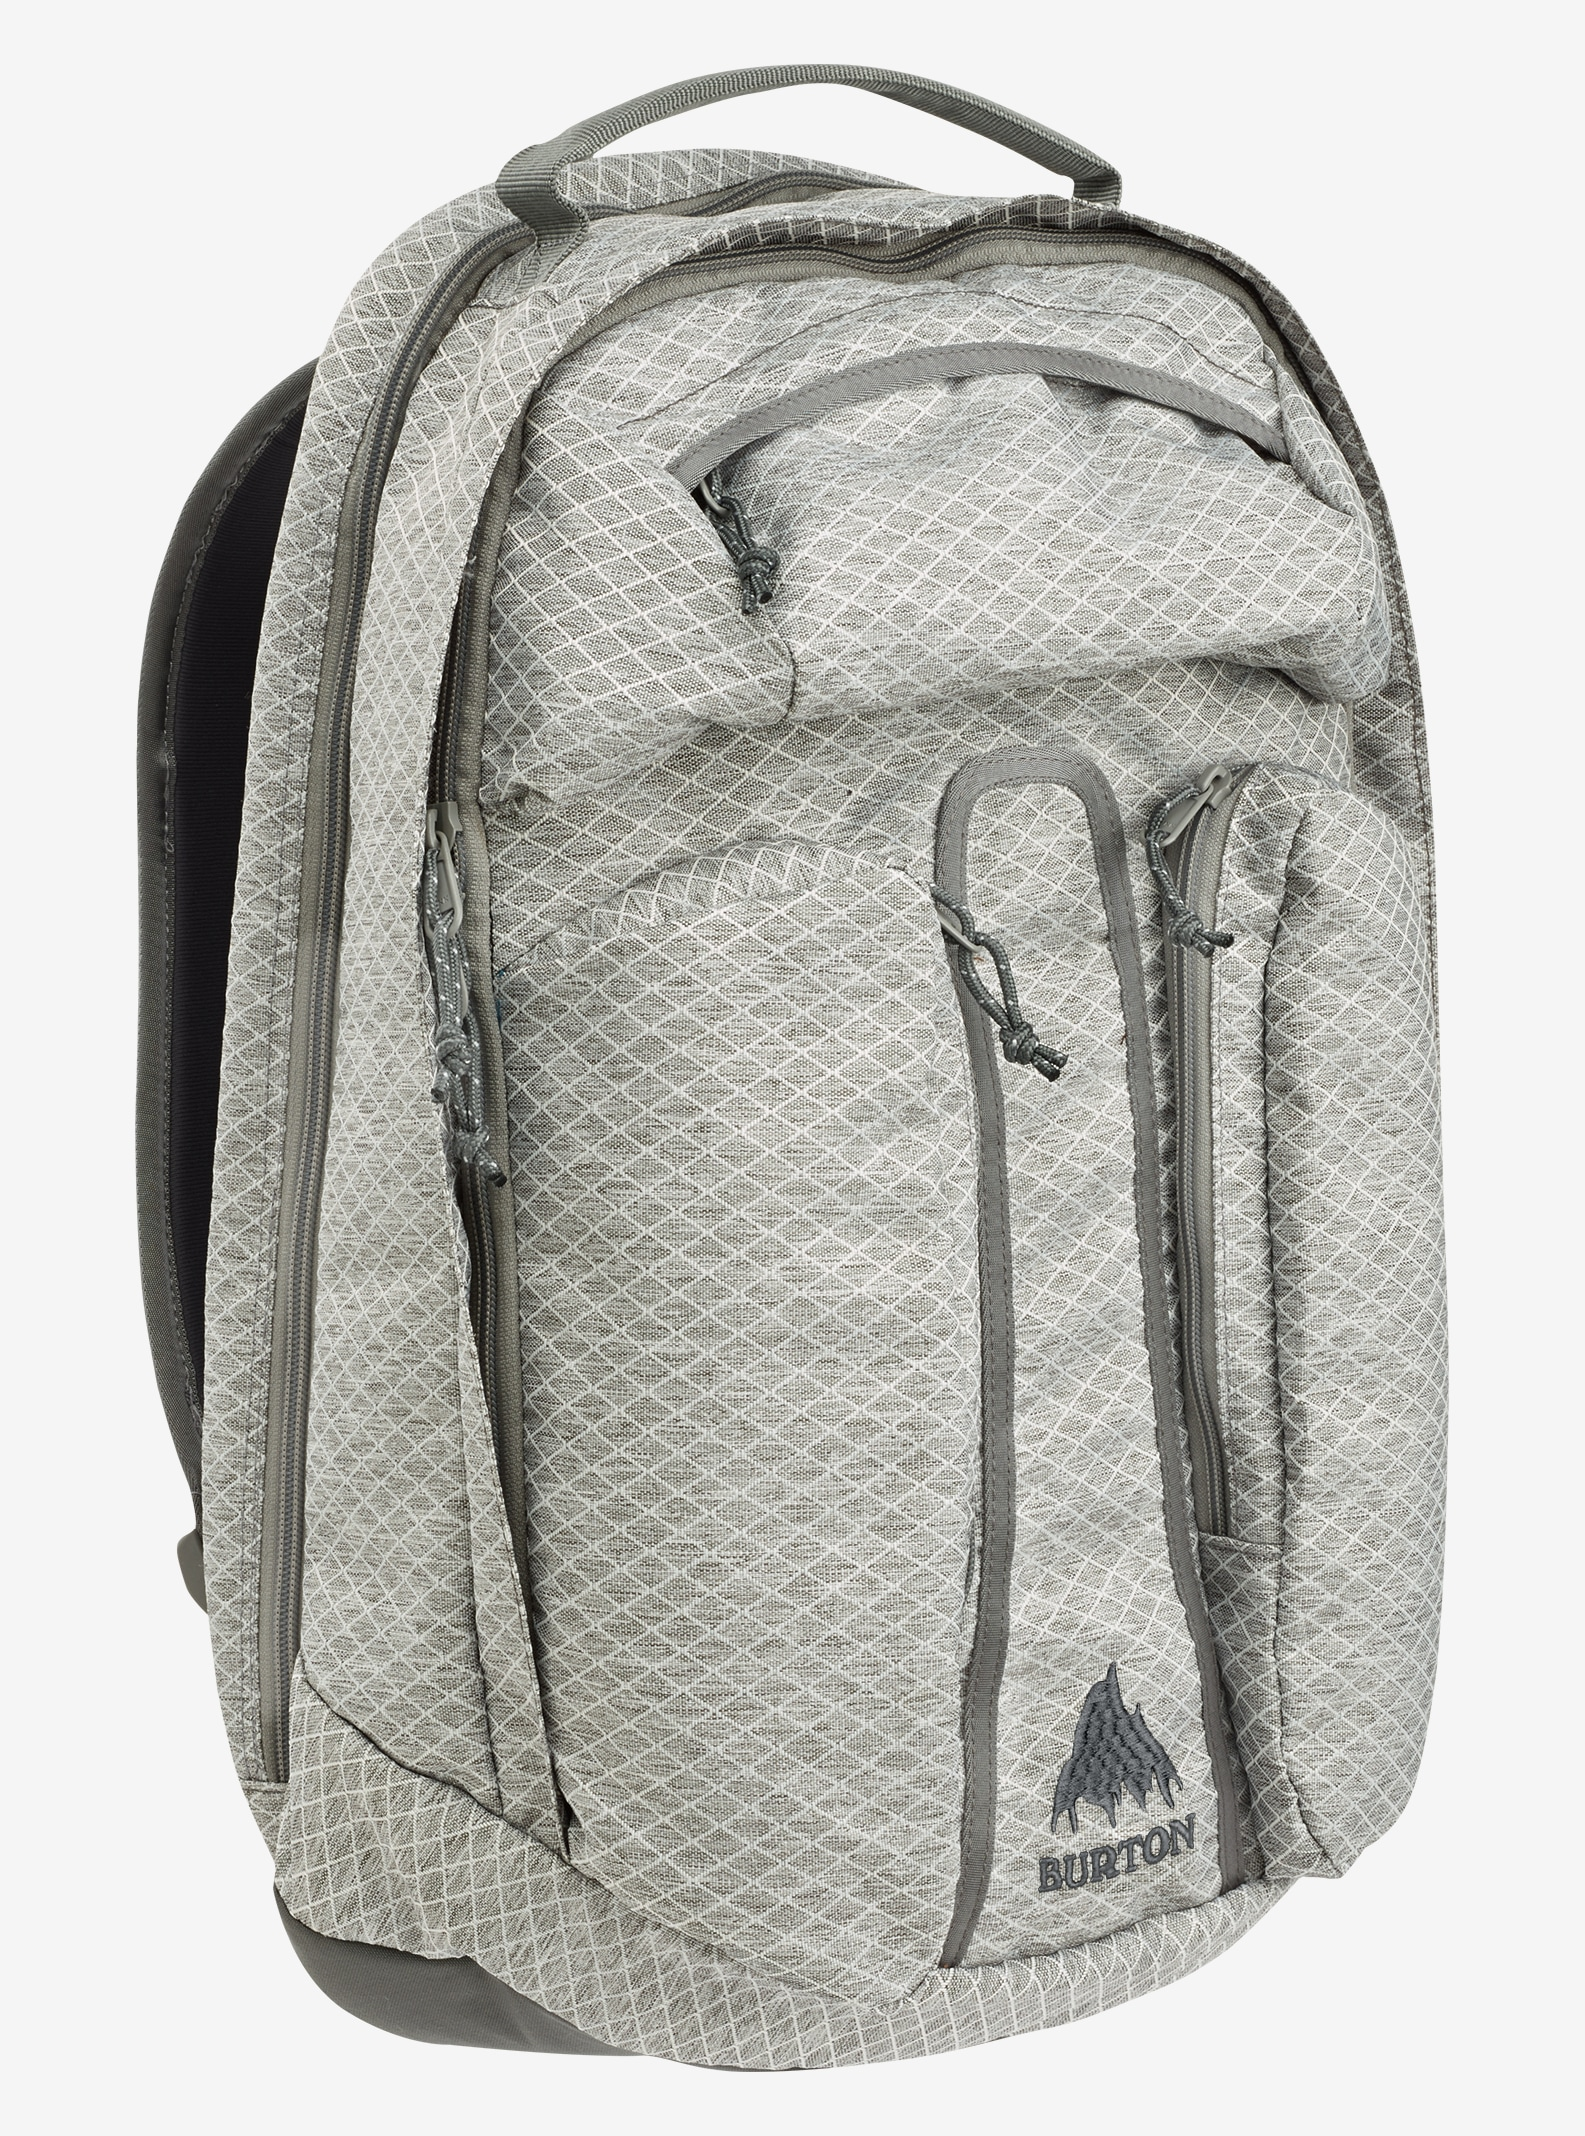 Burton Curbshark Backpack shown in Grey Heather Diamond Ripstop